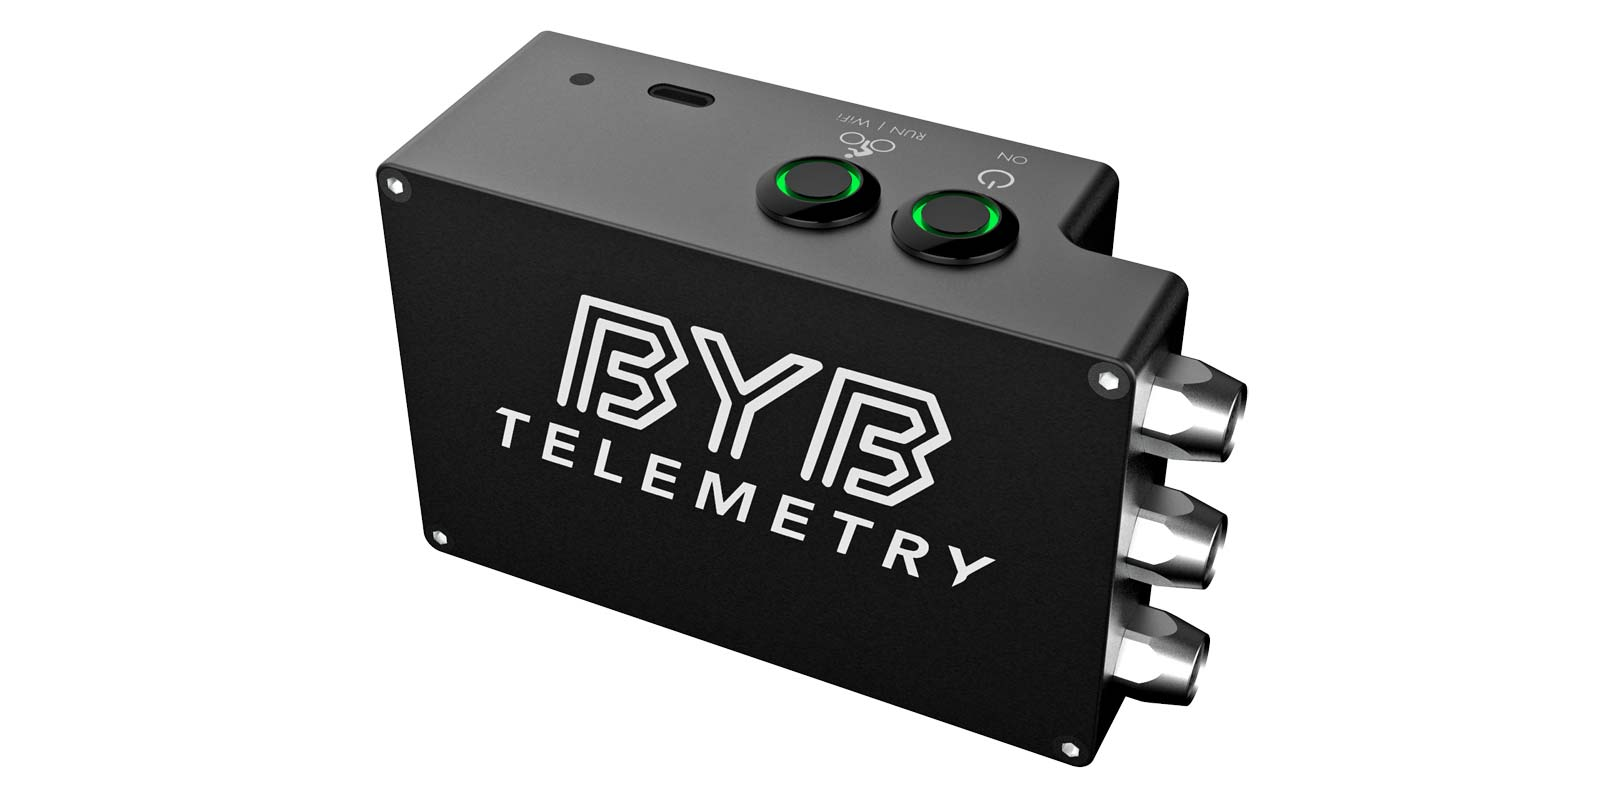 BYB Telemetry v2.0 pro MTB suspension analysis for the privateer mountain bike racer, CPU head unit